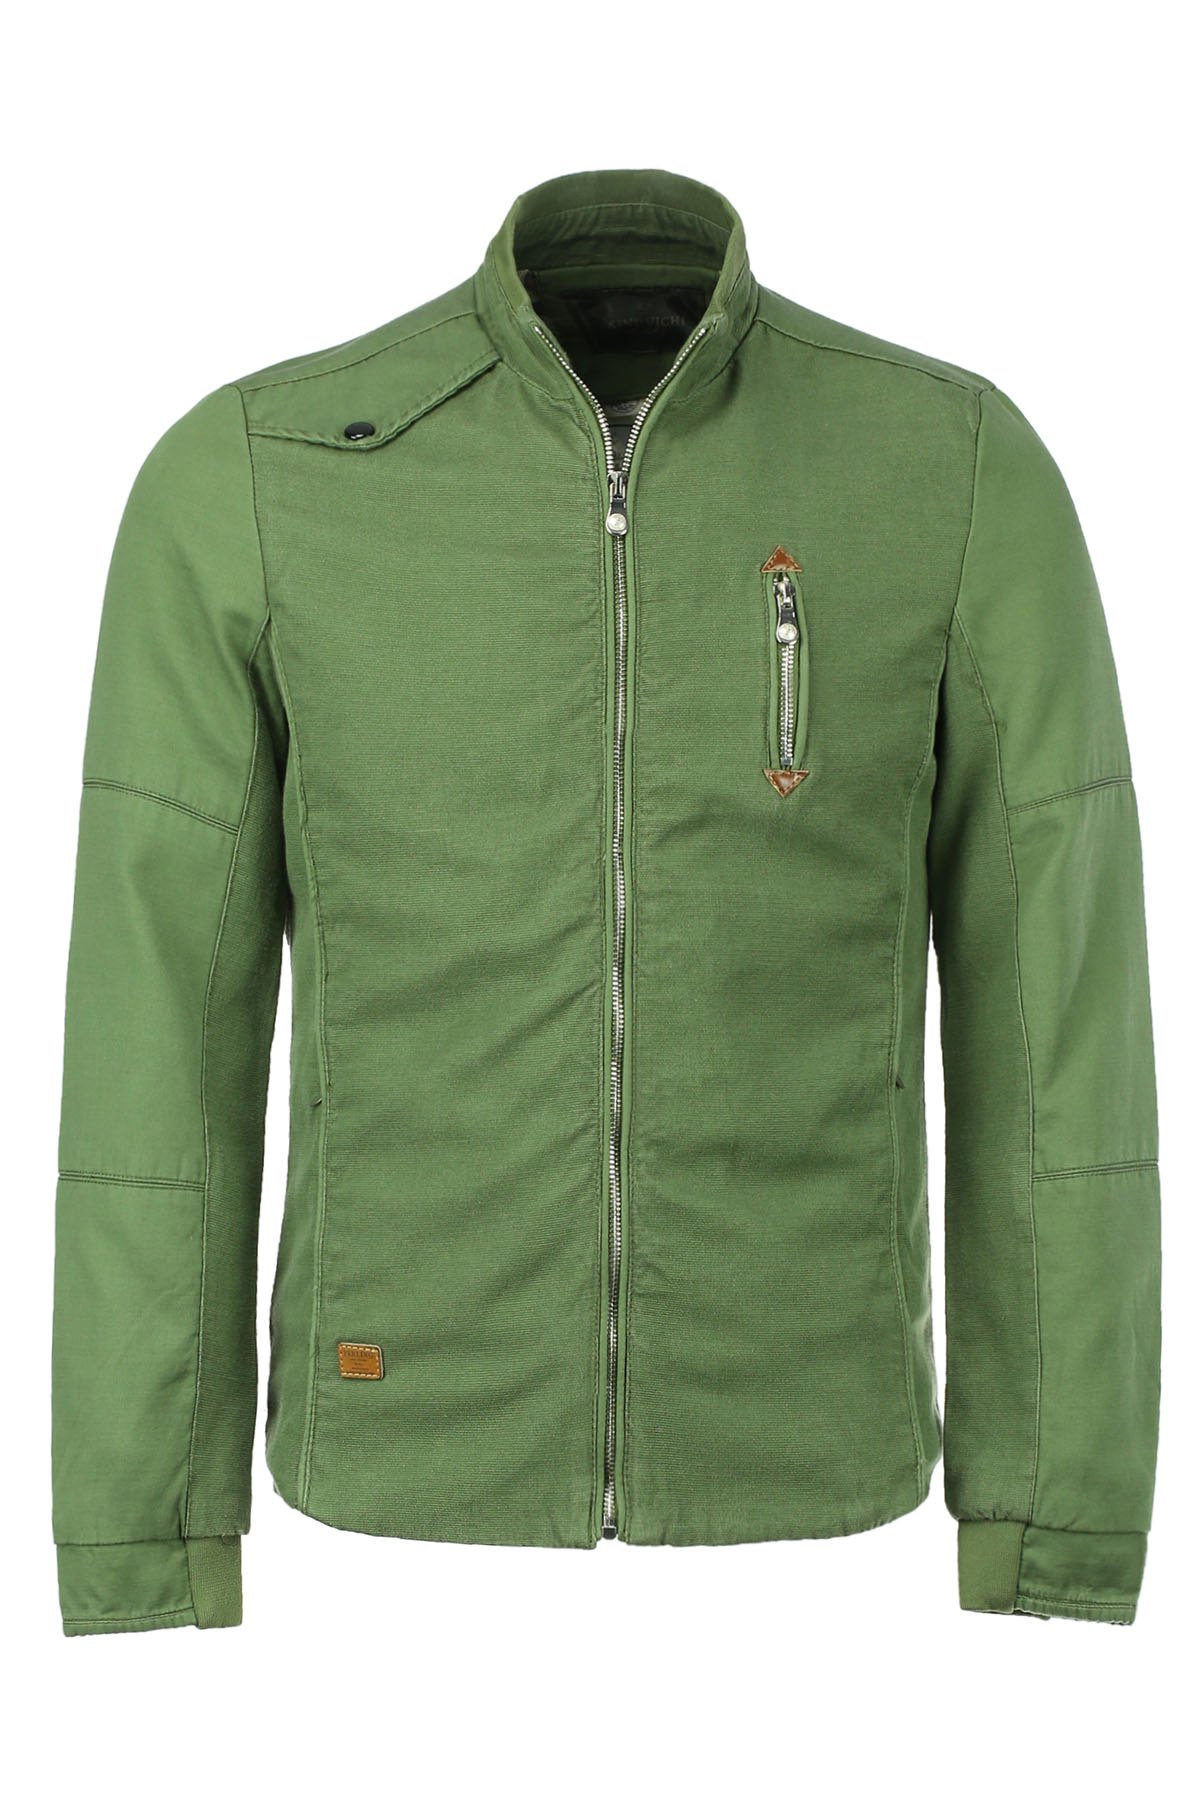 Modish Stand Collar Zipper and PU Leather Embellished Men's Long Sleeves Jacket - GREEN L